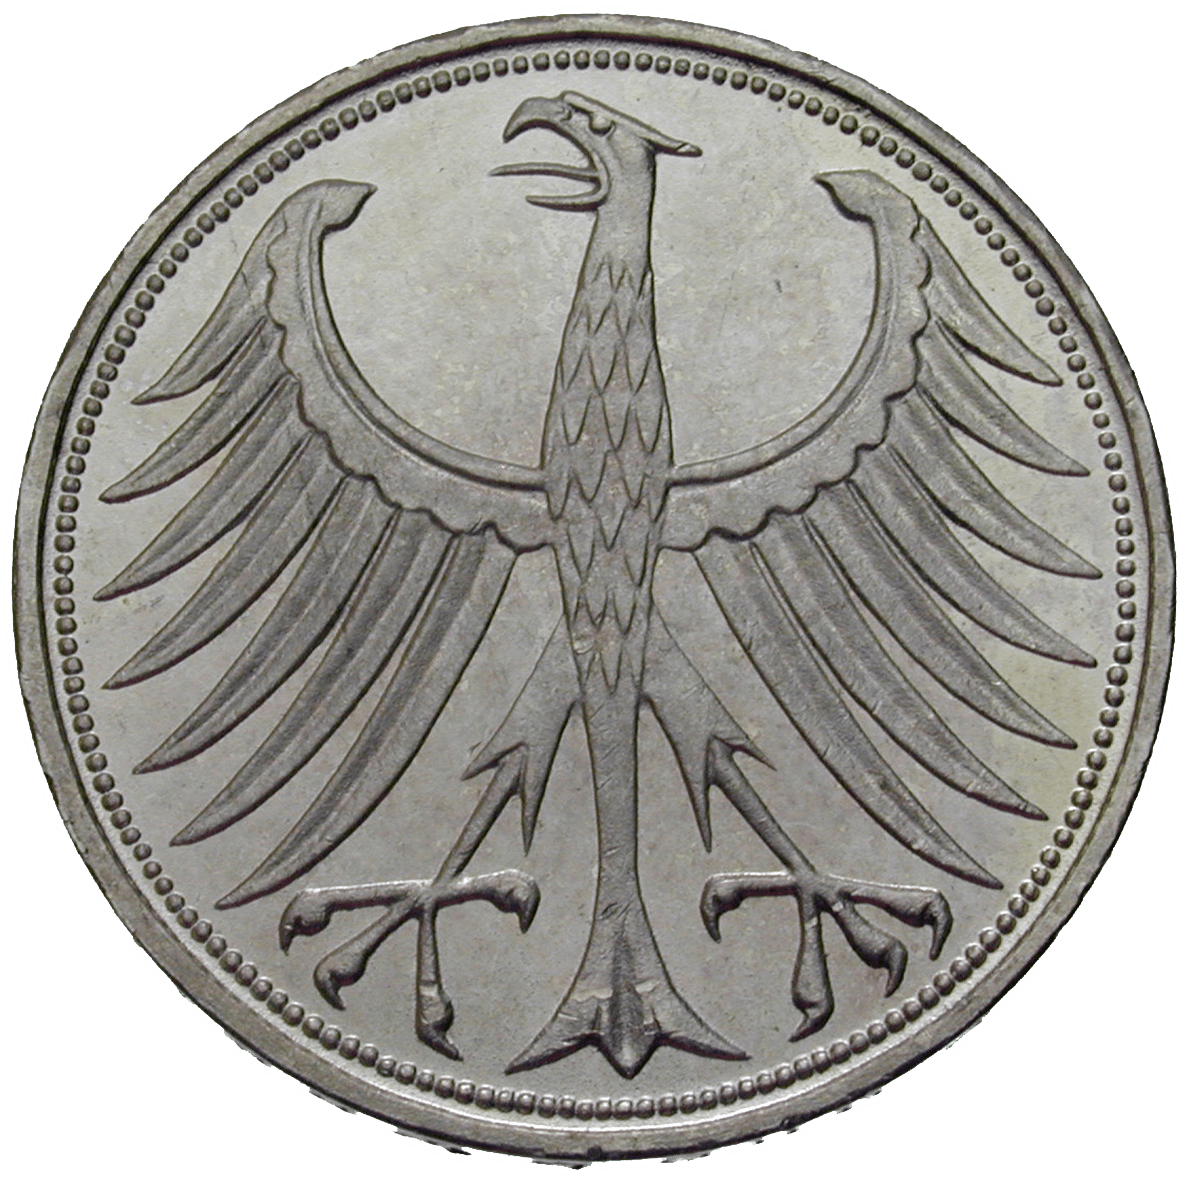 Federal Republic of Germany, 5 Deutsche Mark 1956 (reverse)